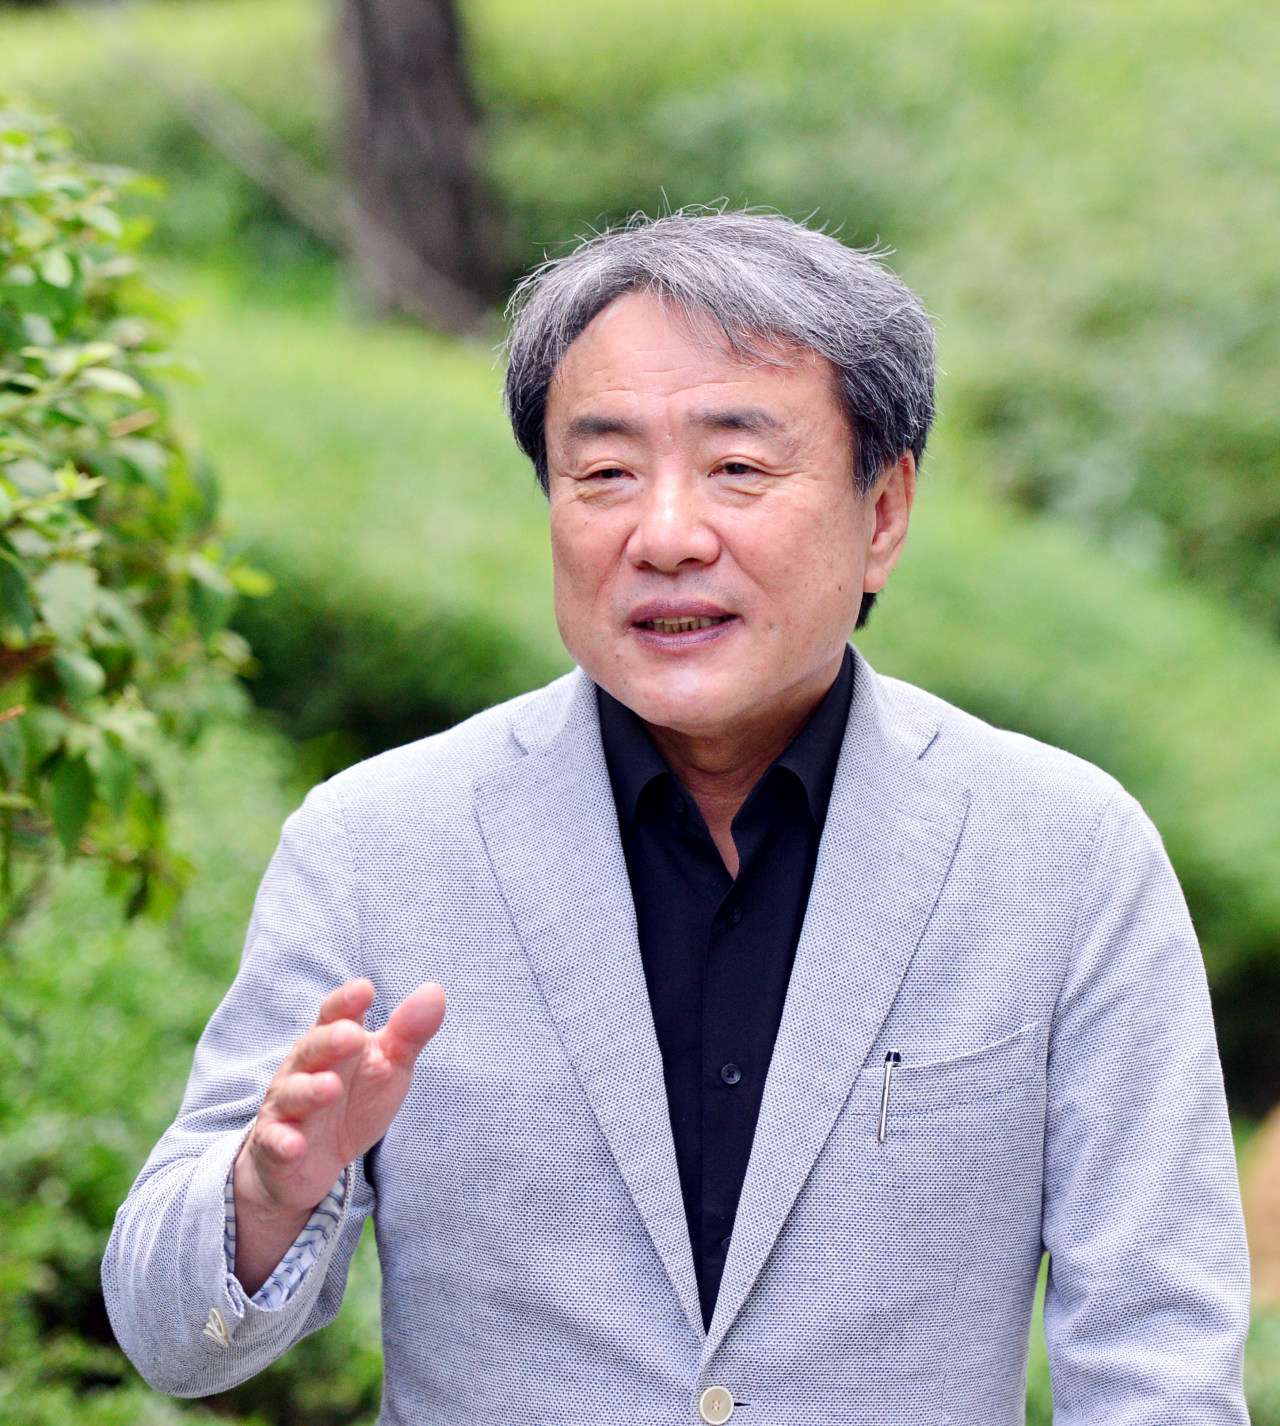 Dr. Paik Soon-young, professor emeritus of microbiology at Catholic University of Korea, speaks during a recent interview with The Korea Herald. (Park Hyun-koo/The Korea Herald)